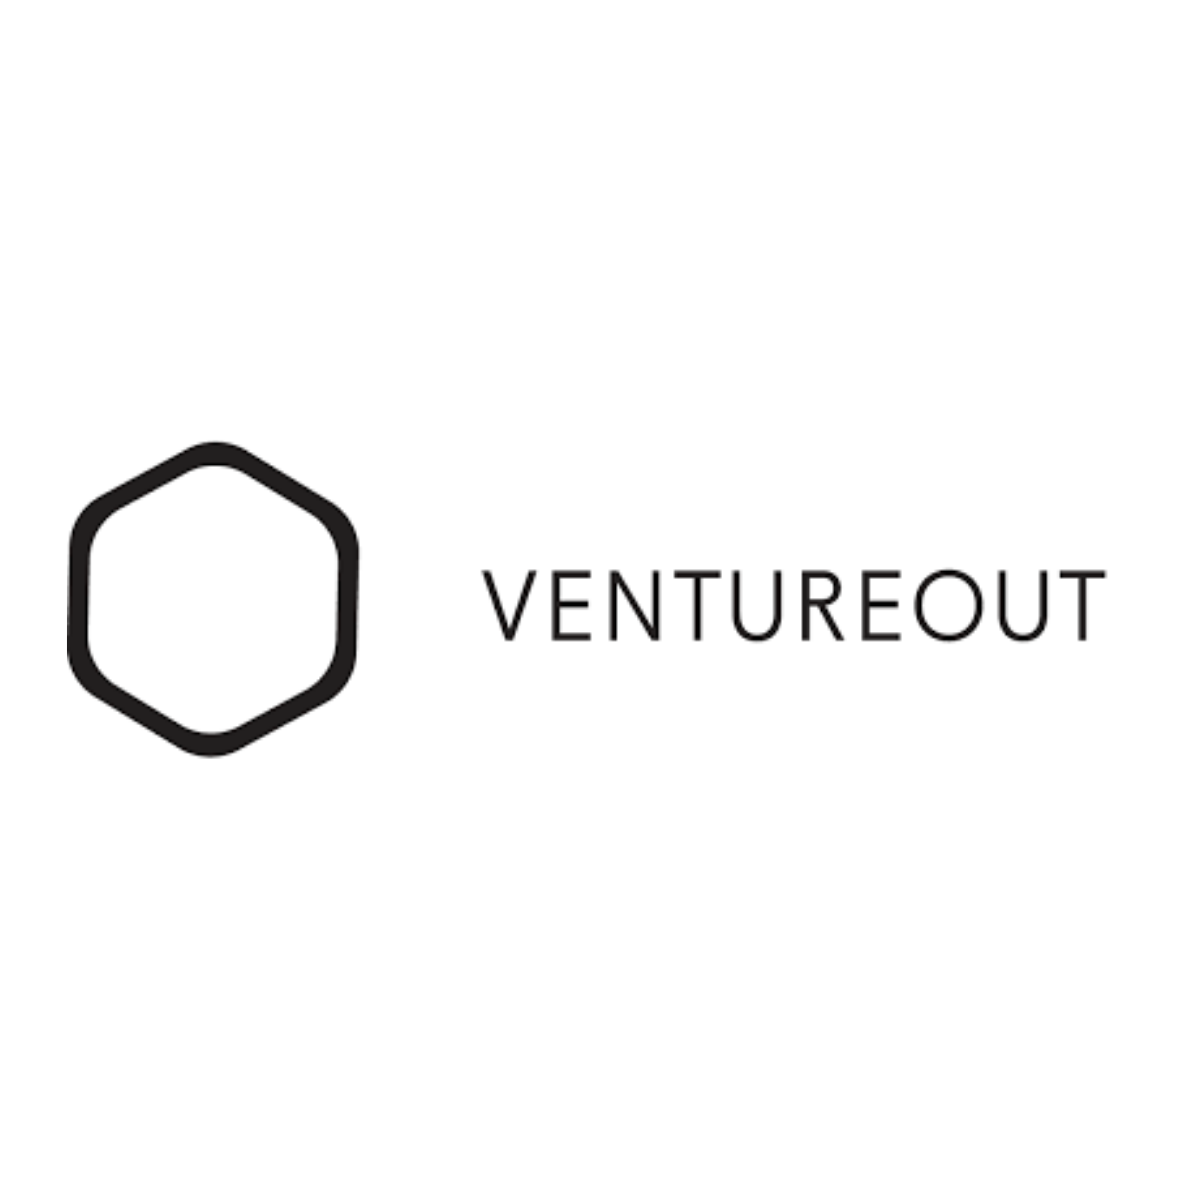 Secfense featured by VentureOut